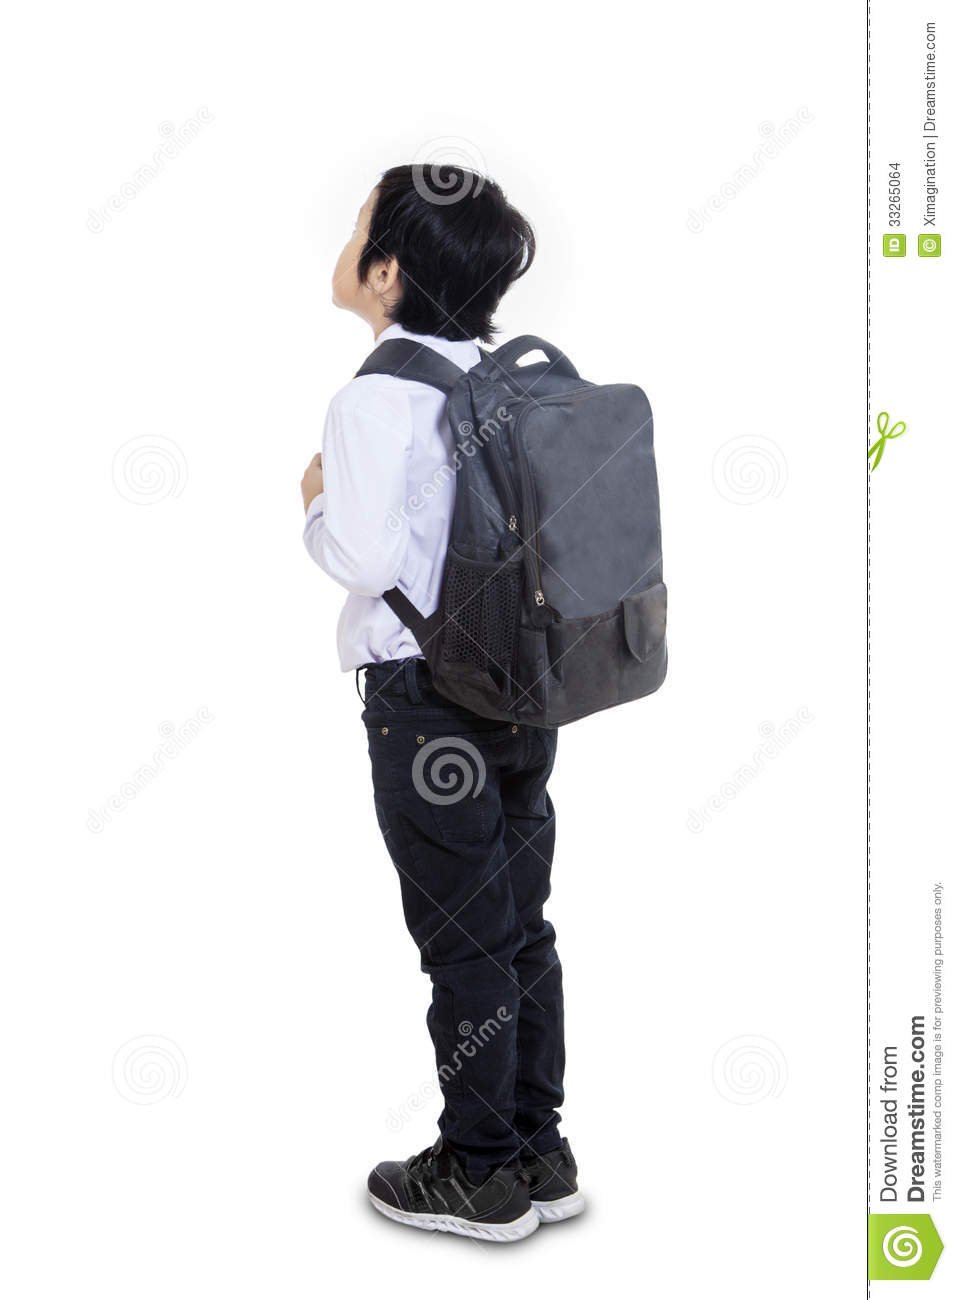 Business Boy Carry Bag From Behind - Isolated Stock Images - Image ...   957 x 1300 jpeg 62kB